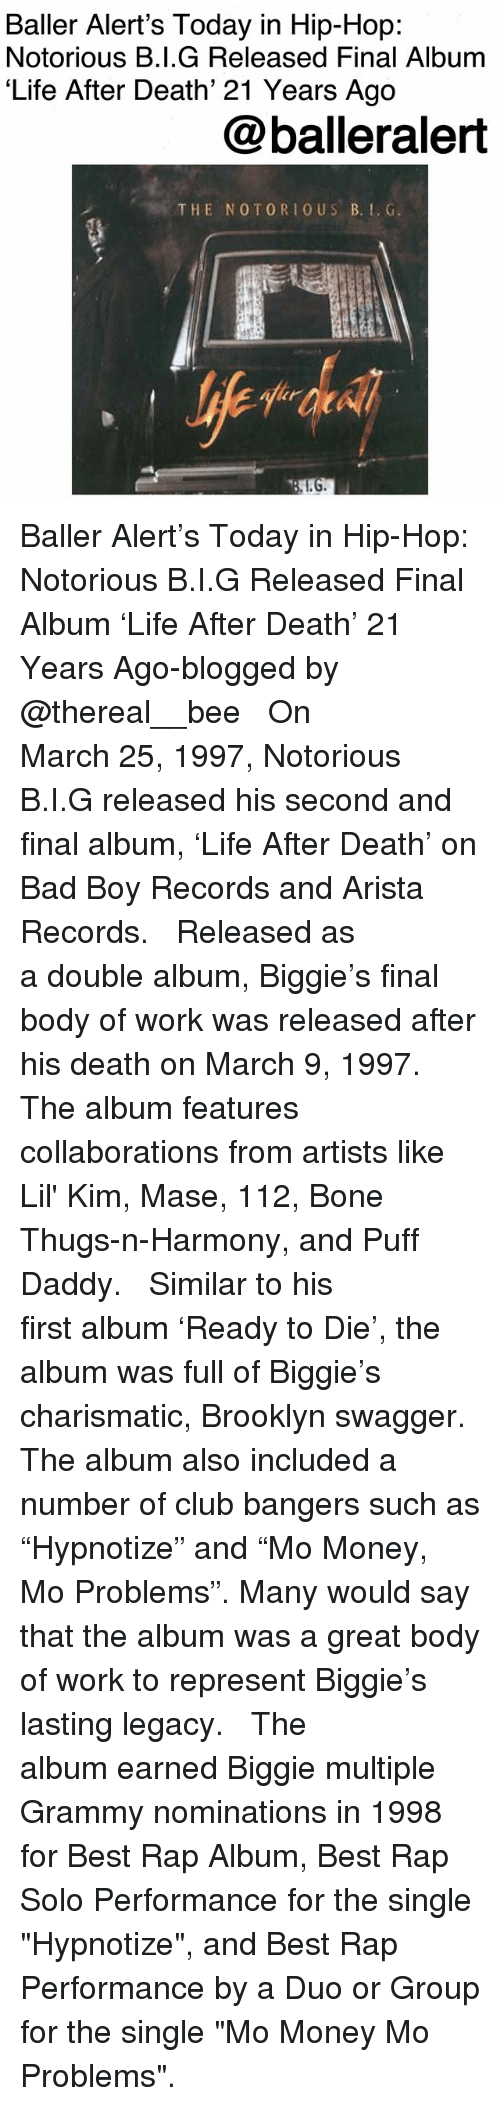 "Thereal: Baller Alert's Today in Hip-Hop:  Notorious B.I.G Released Final Album  'Life After Death' 21 Years Ago  @balleralert  THE NOTORIO US B.. G Baller Alert's Today in Hip-Hop: Notorious B.I.G Released Final Album 'Life After Death' 21 Years Ago-blogged by @thereal__bee ⠀⠀⠀⠀⠀⠀⠀⠀⠀ ⠀⠀ On March 25, 1997, Notorious B.I.G released his second and final album, 'Life After Death' on Bad Boy Records and Arista Records. ⠀⠀⠀⠀⠀⠀⠀⠀⠀ ⠀⠀ Released as a double album, Biggie's final body of work was released after his death on March 9, 1997. The album features collaborations from artists like Lil' Kim, Mase, 112, Bone Thugs-n-Harmony, and Puff Daddy. ⠀⠀⠀⠀⠀⠀⠀⠀⠀ ⠀⠀ Similar to his first album 'Ready to Die', the album was full of Biggie's charismatic, Brooklyn swagger. The album also included a number of club bangers such as ""Hypnotize"" and ""Mo Money, Mo Problems"". Many would say that the album was a great body of work to represent Biggie's lasting legacy. ⠀⠀⠀⠀⠀⠀⠀⠀⠀ ⠀⠀ The album earned Biggie multiple Grammy nominations in 1998 for Best Rap Album, Best Rap Solo Performance for the single ""Hypnotize"", and Best Rap Performance by a Duo or Group for the single ""Mo Money Mo Problems""."